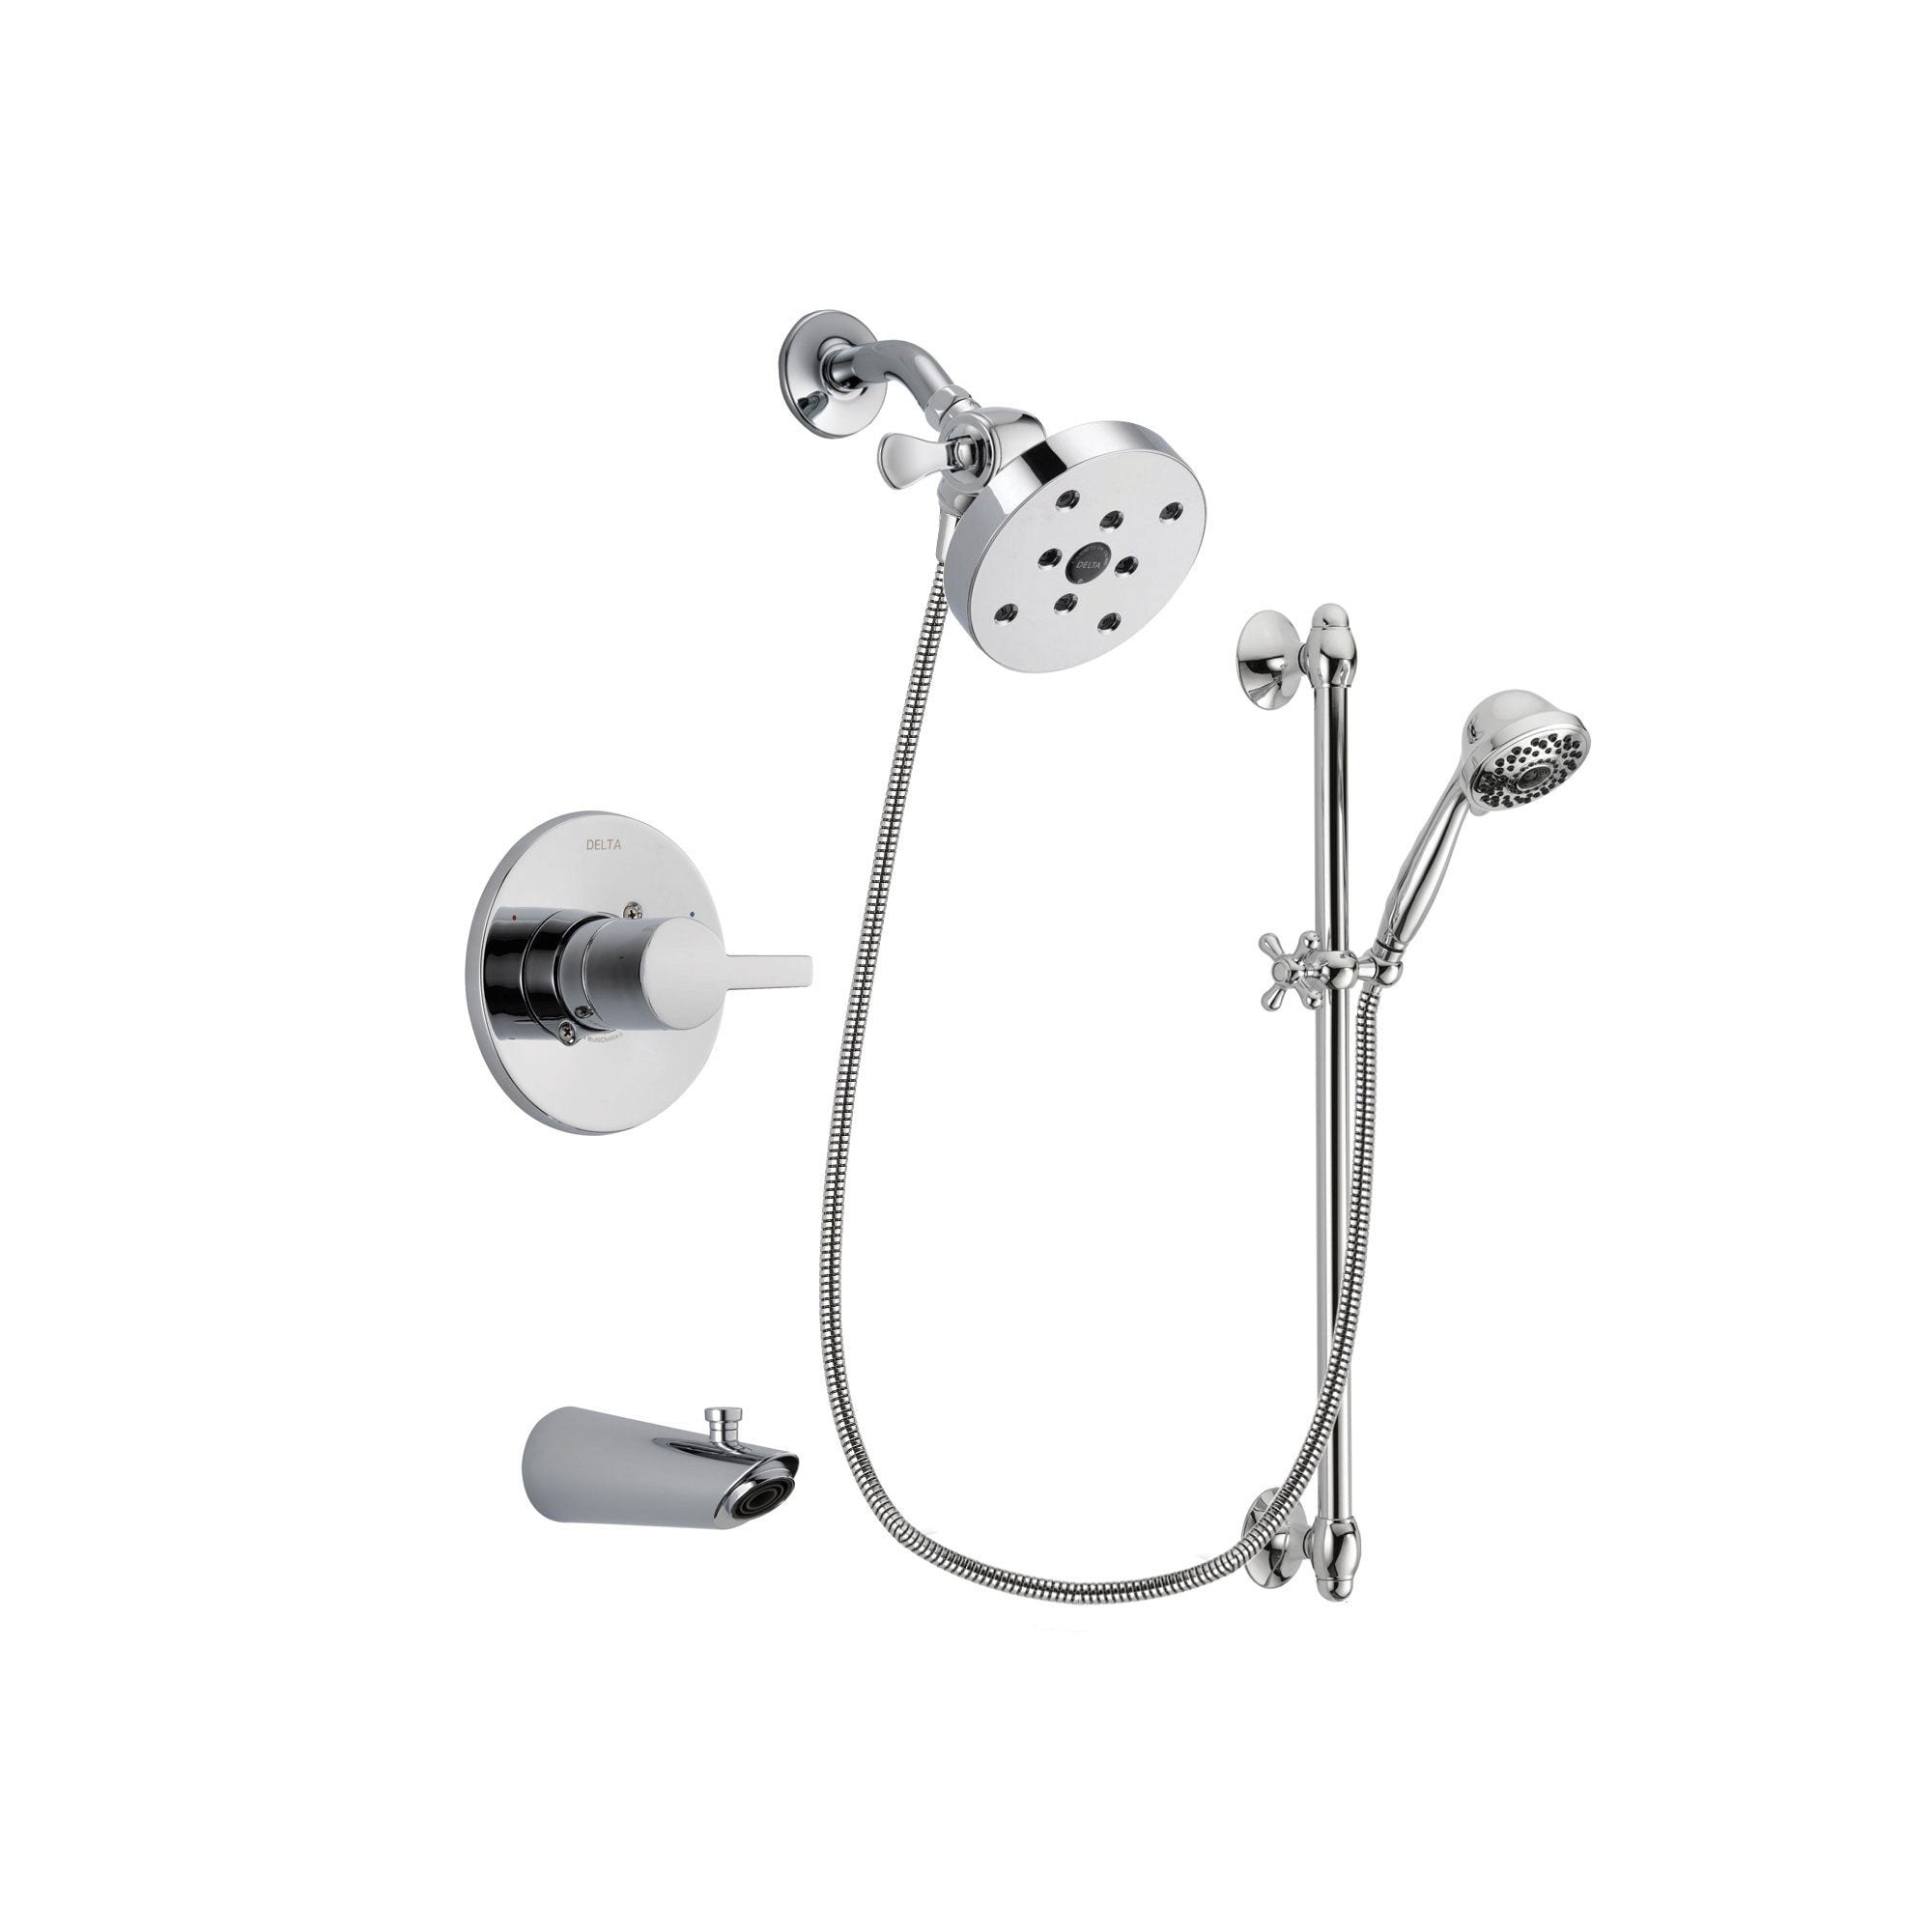 Delta Compel Chrome Tub and Shower Faucet System with Hand Shower DSP0677V